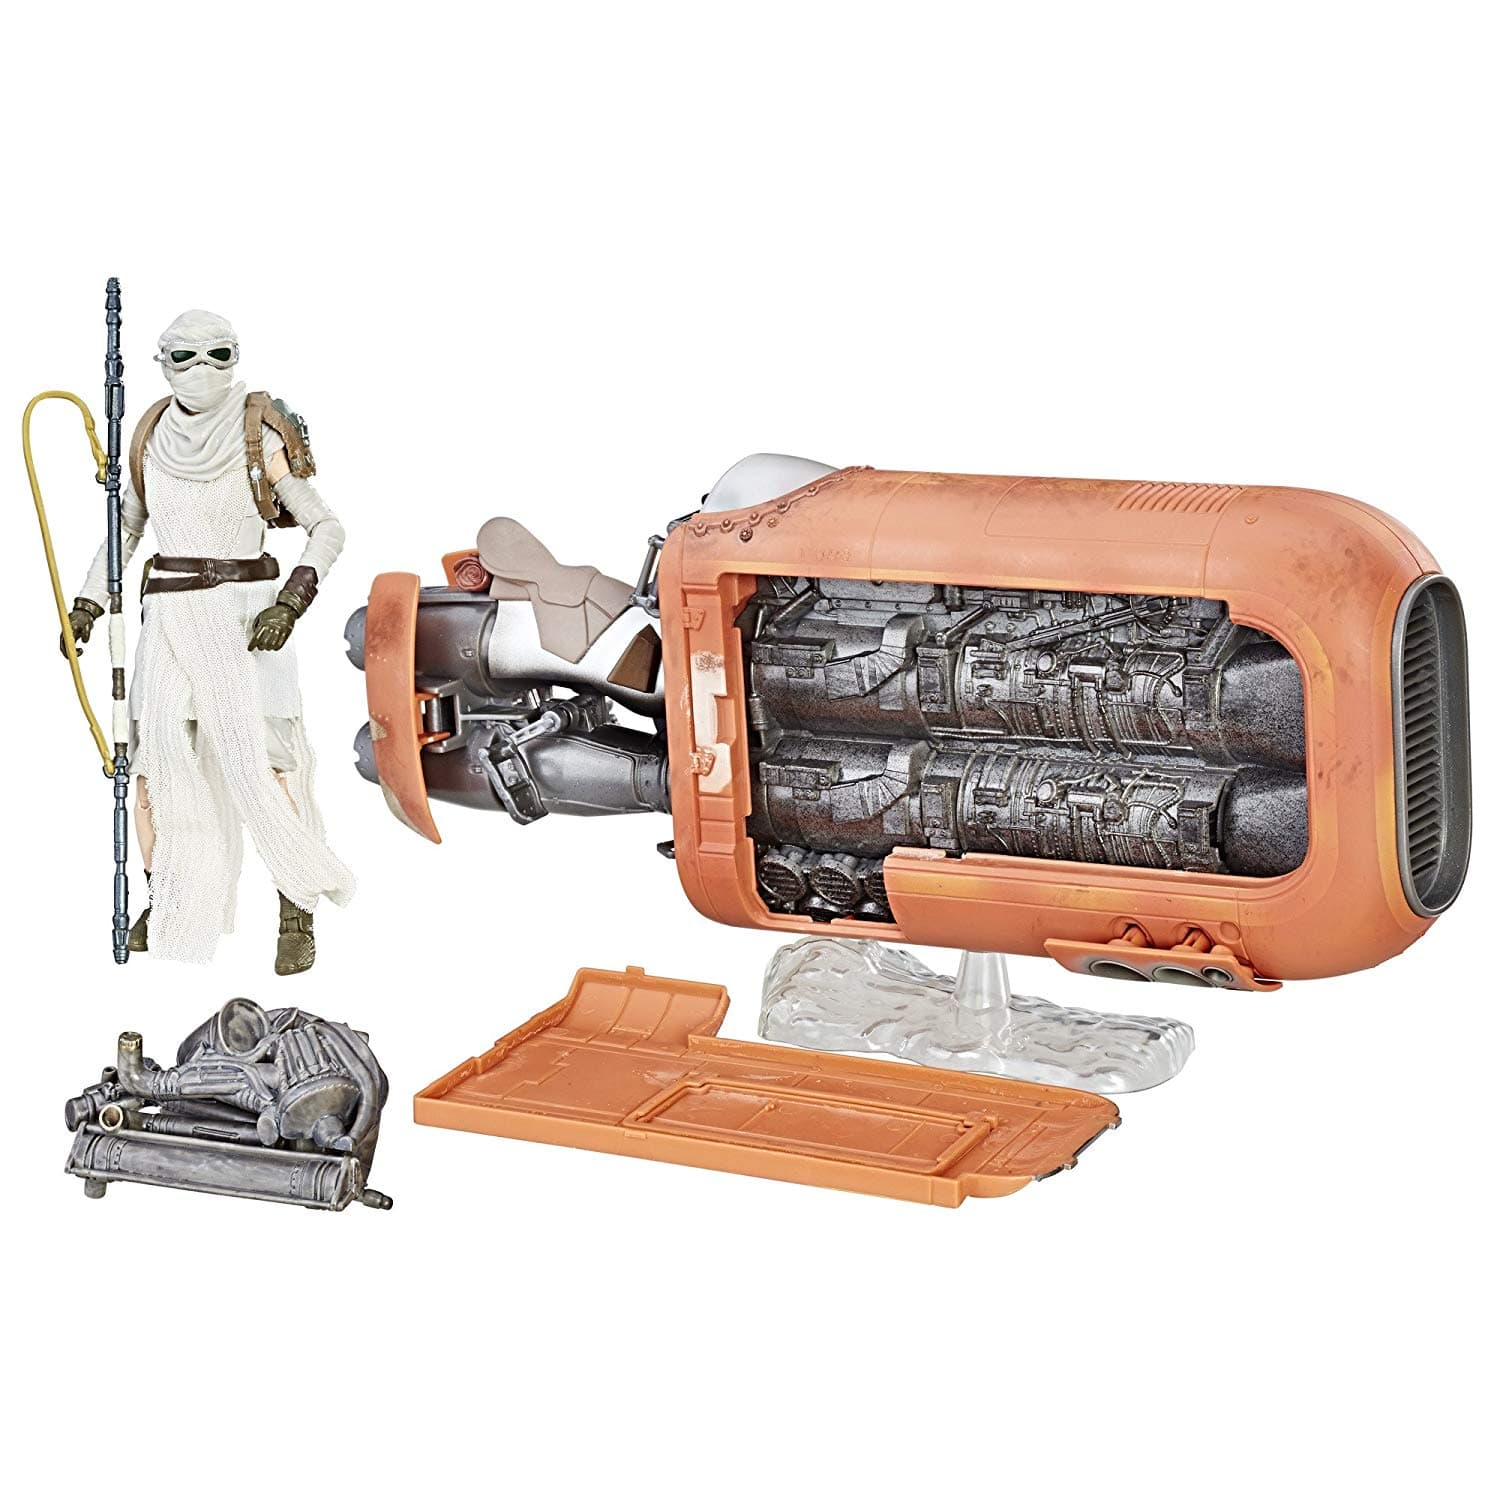 Star Wars The Black Series Rey's Speeder (Jakku) and Figure - $14.98 at Amazon